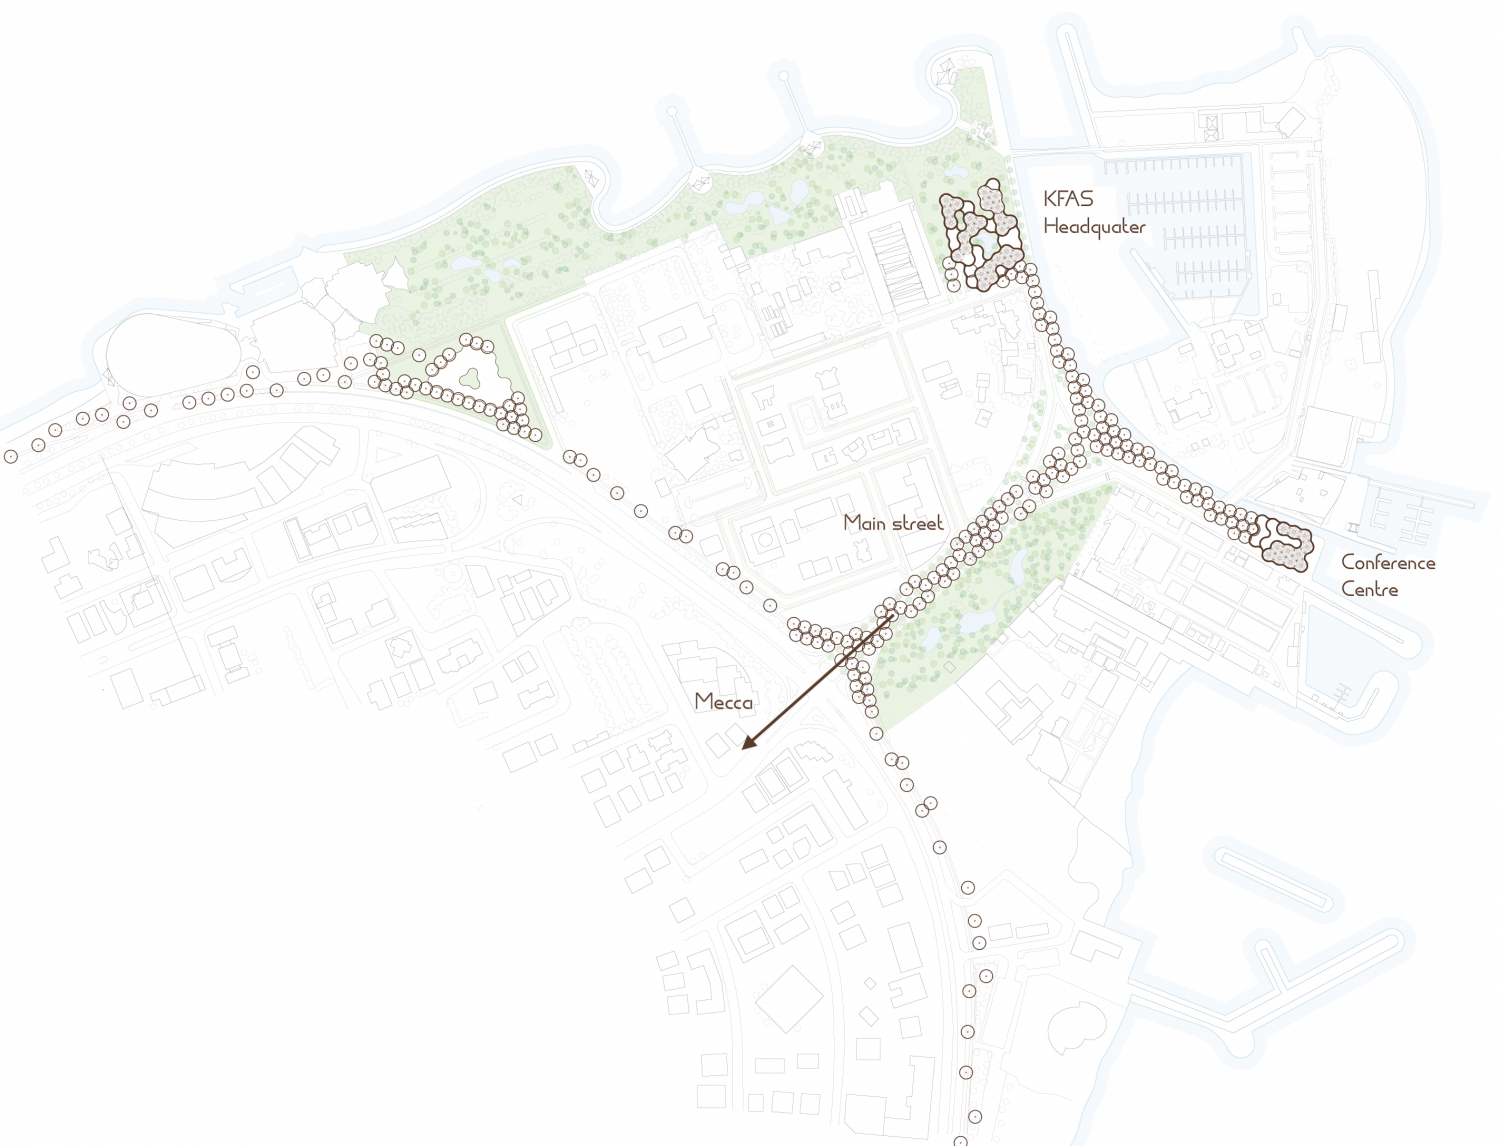 Urban plan containing the HQ, the conference centre and the main street directed to Mecca.